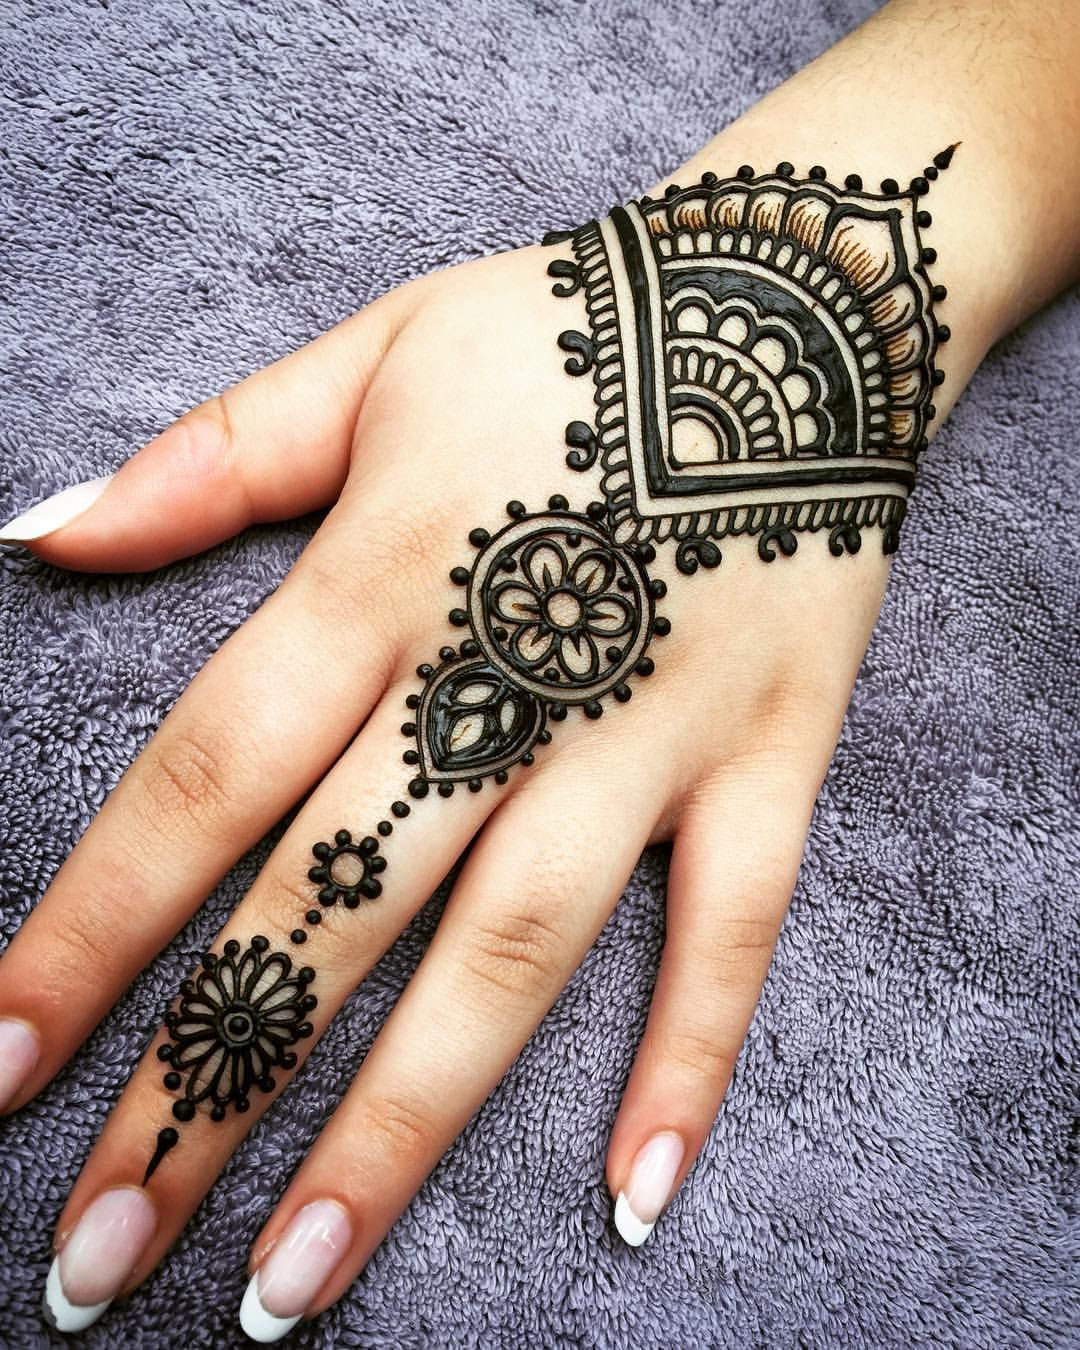 Henna Mehndi Tattoo Designs Idea For Wrist: Best 25+ Mehndi Ideas On Pinterest